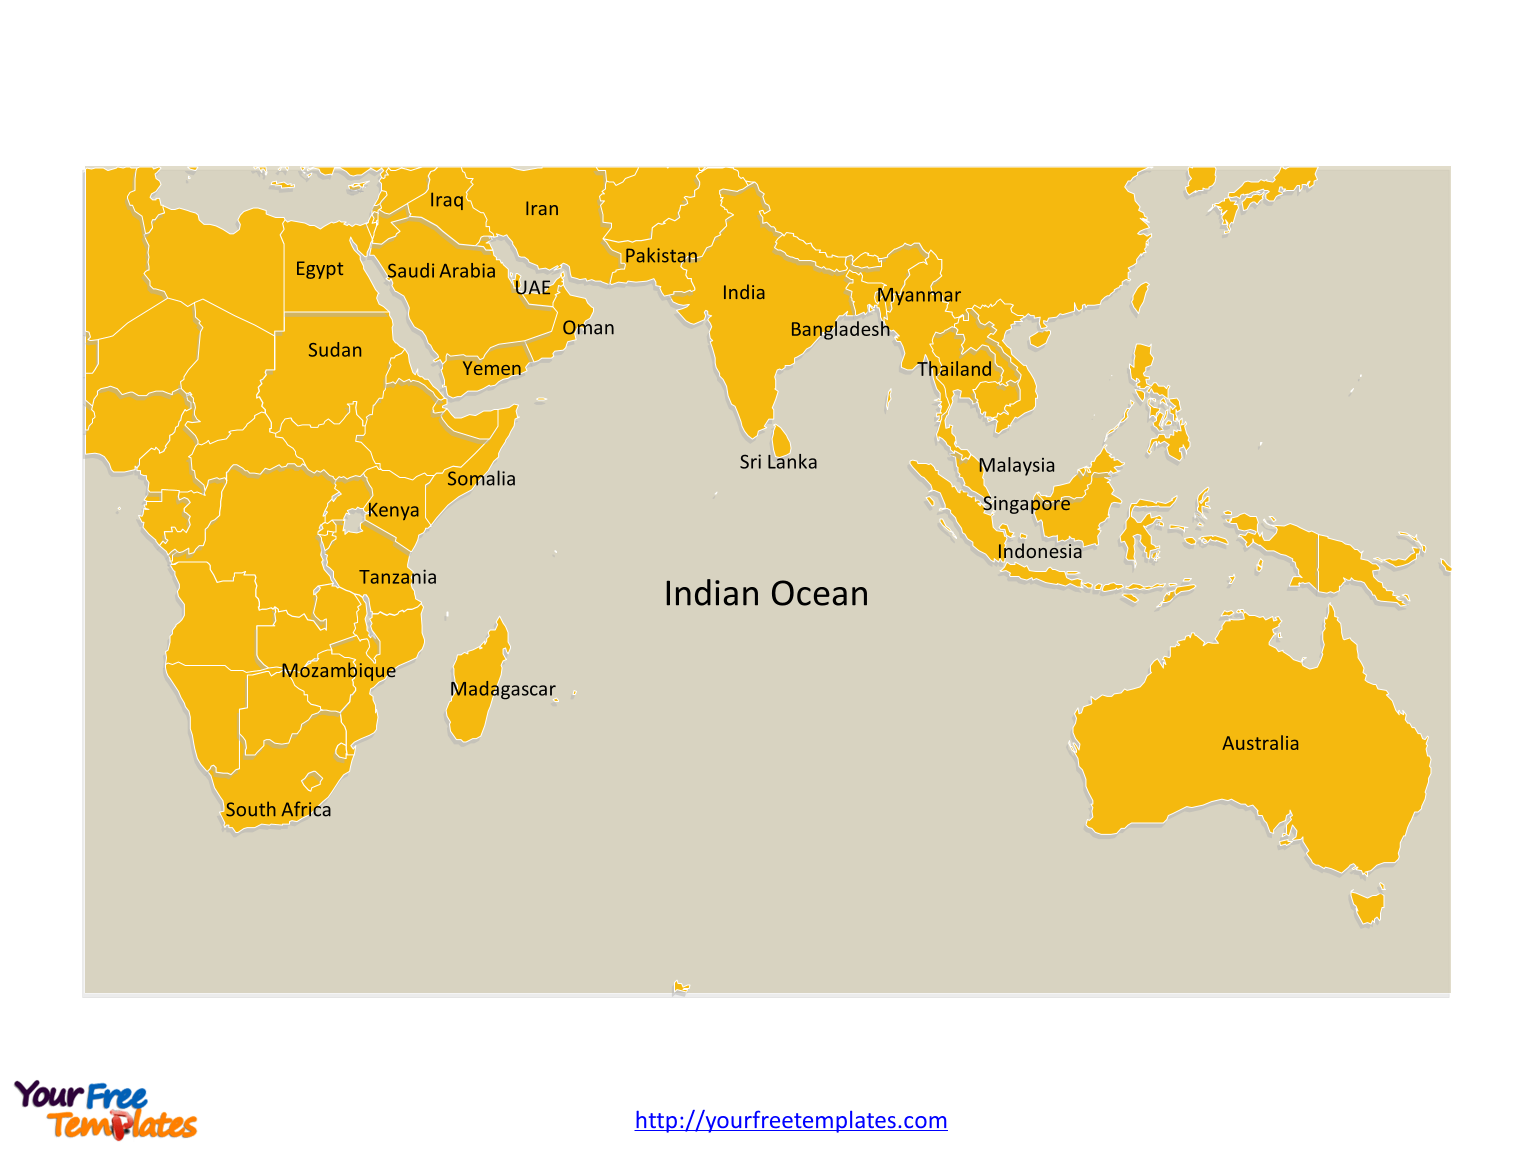 Free indian ocean map template free powerpoint templates indian ocean map labeled major country names gumiabroncs Images